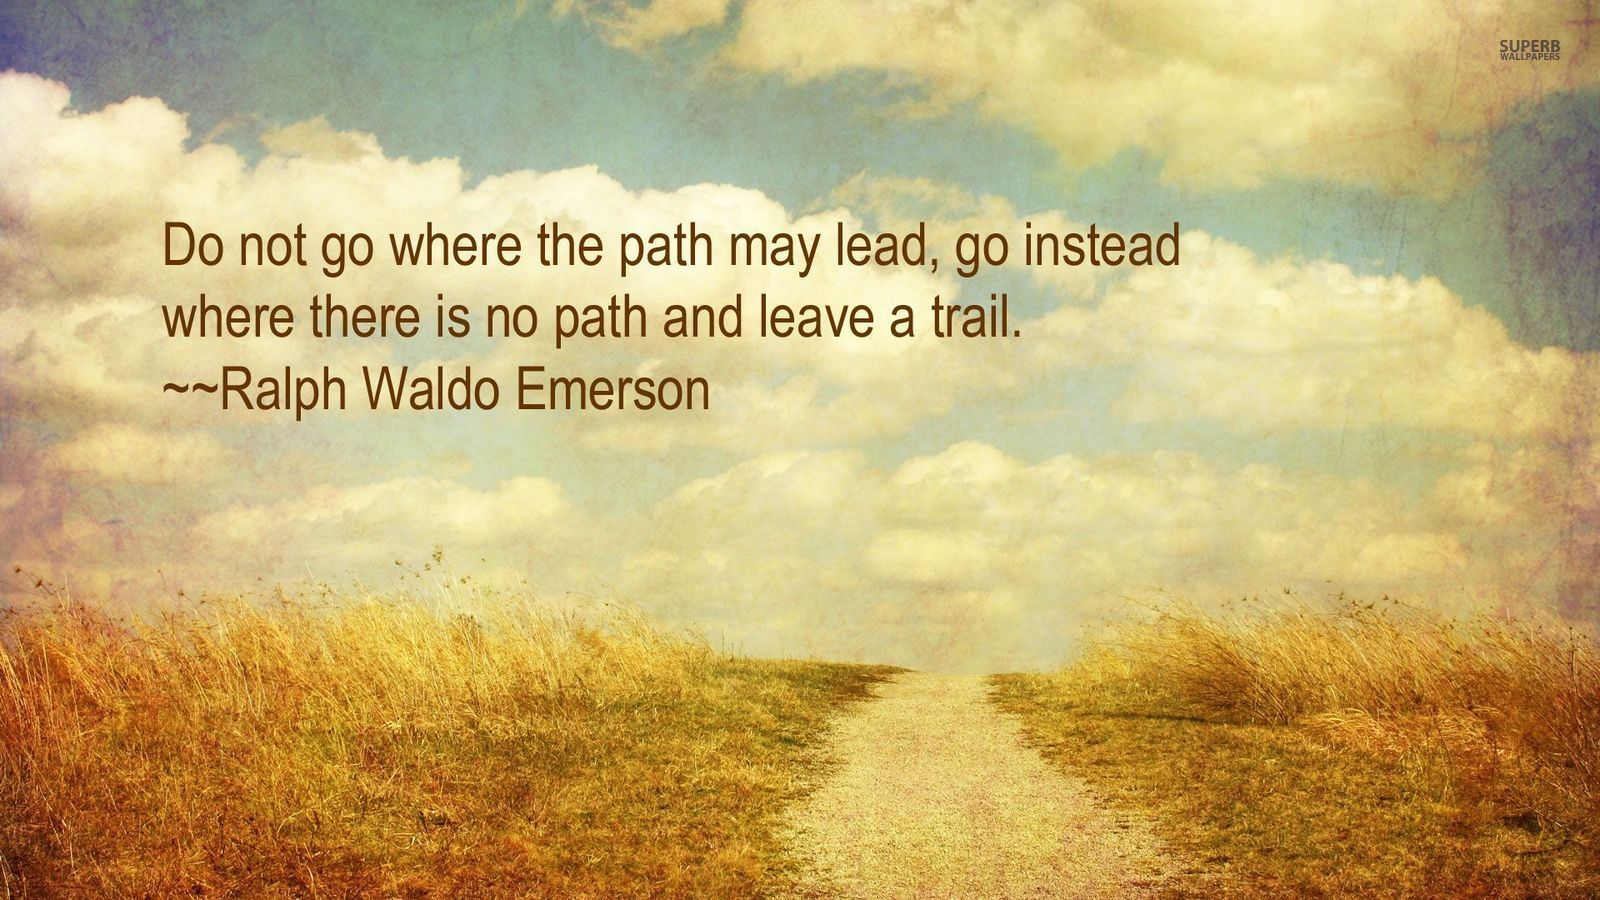 Leave a Trail   Advice Wallpaper 38740635 1600x900